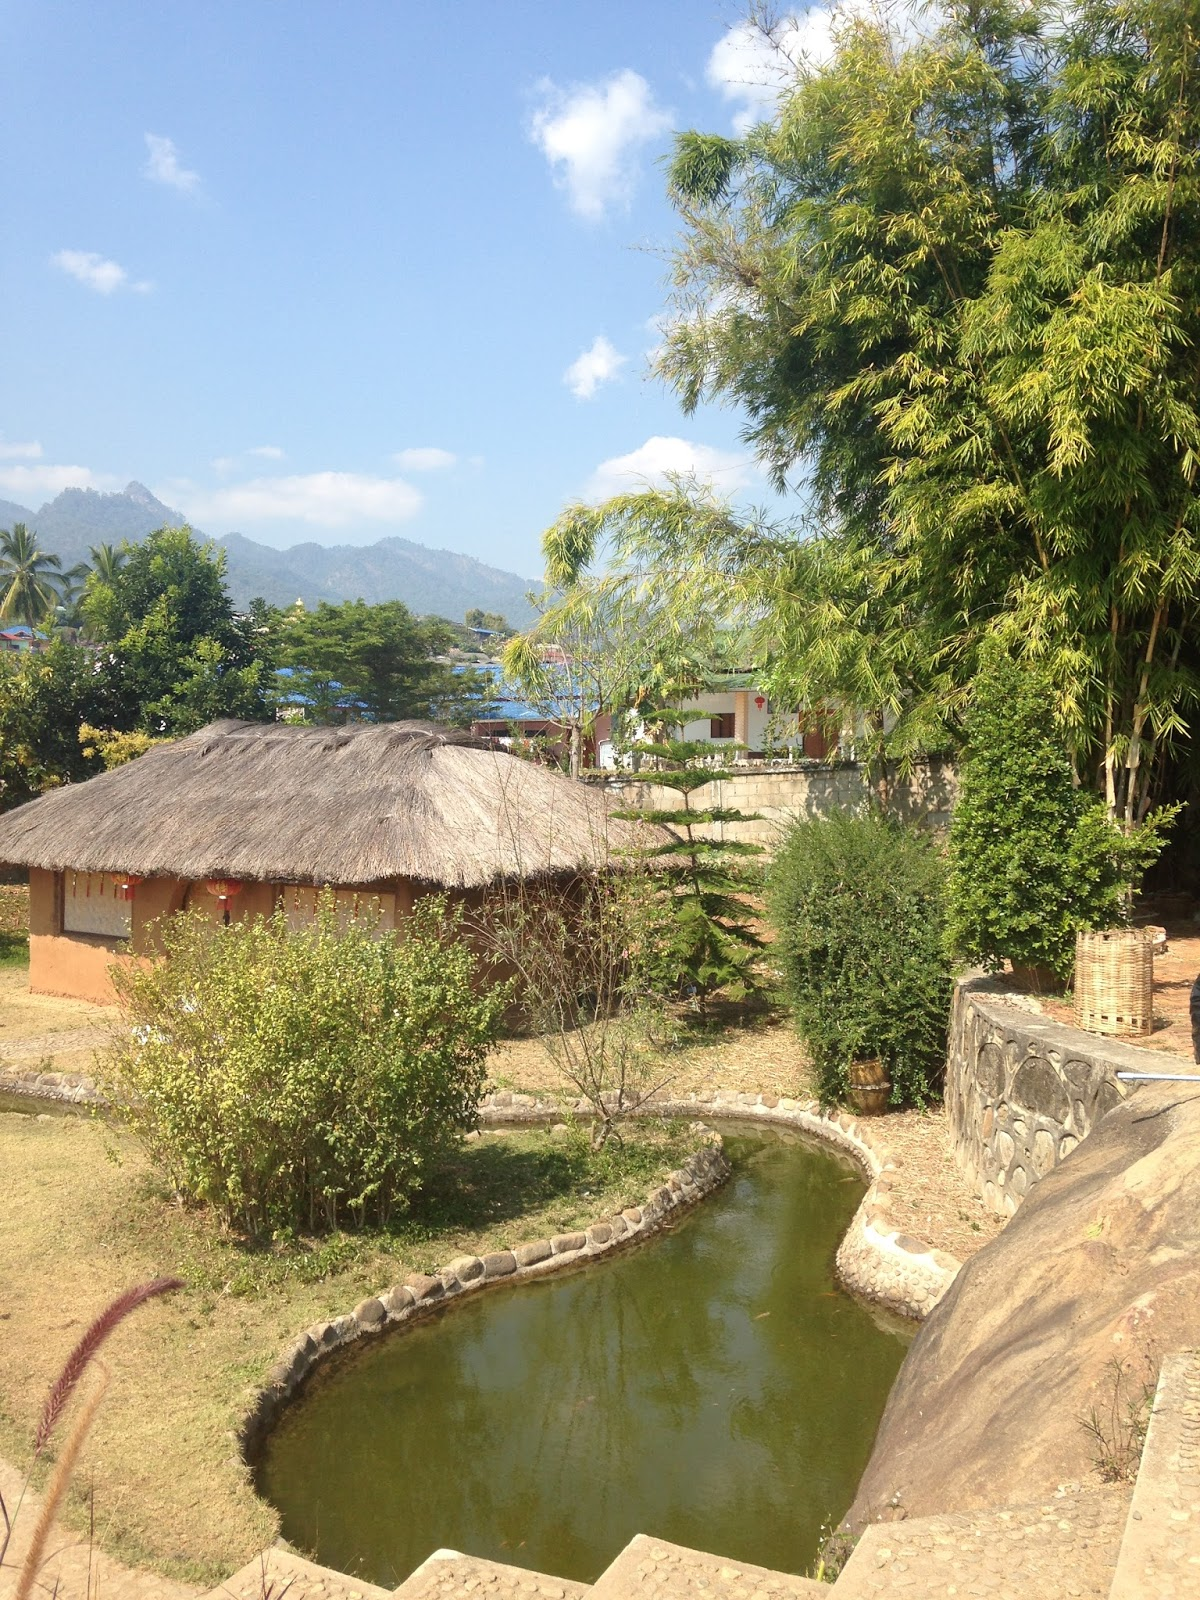 Highlights of Pai, Thailand